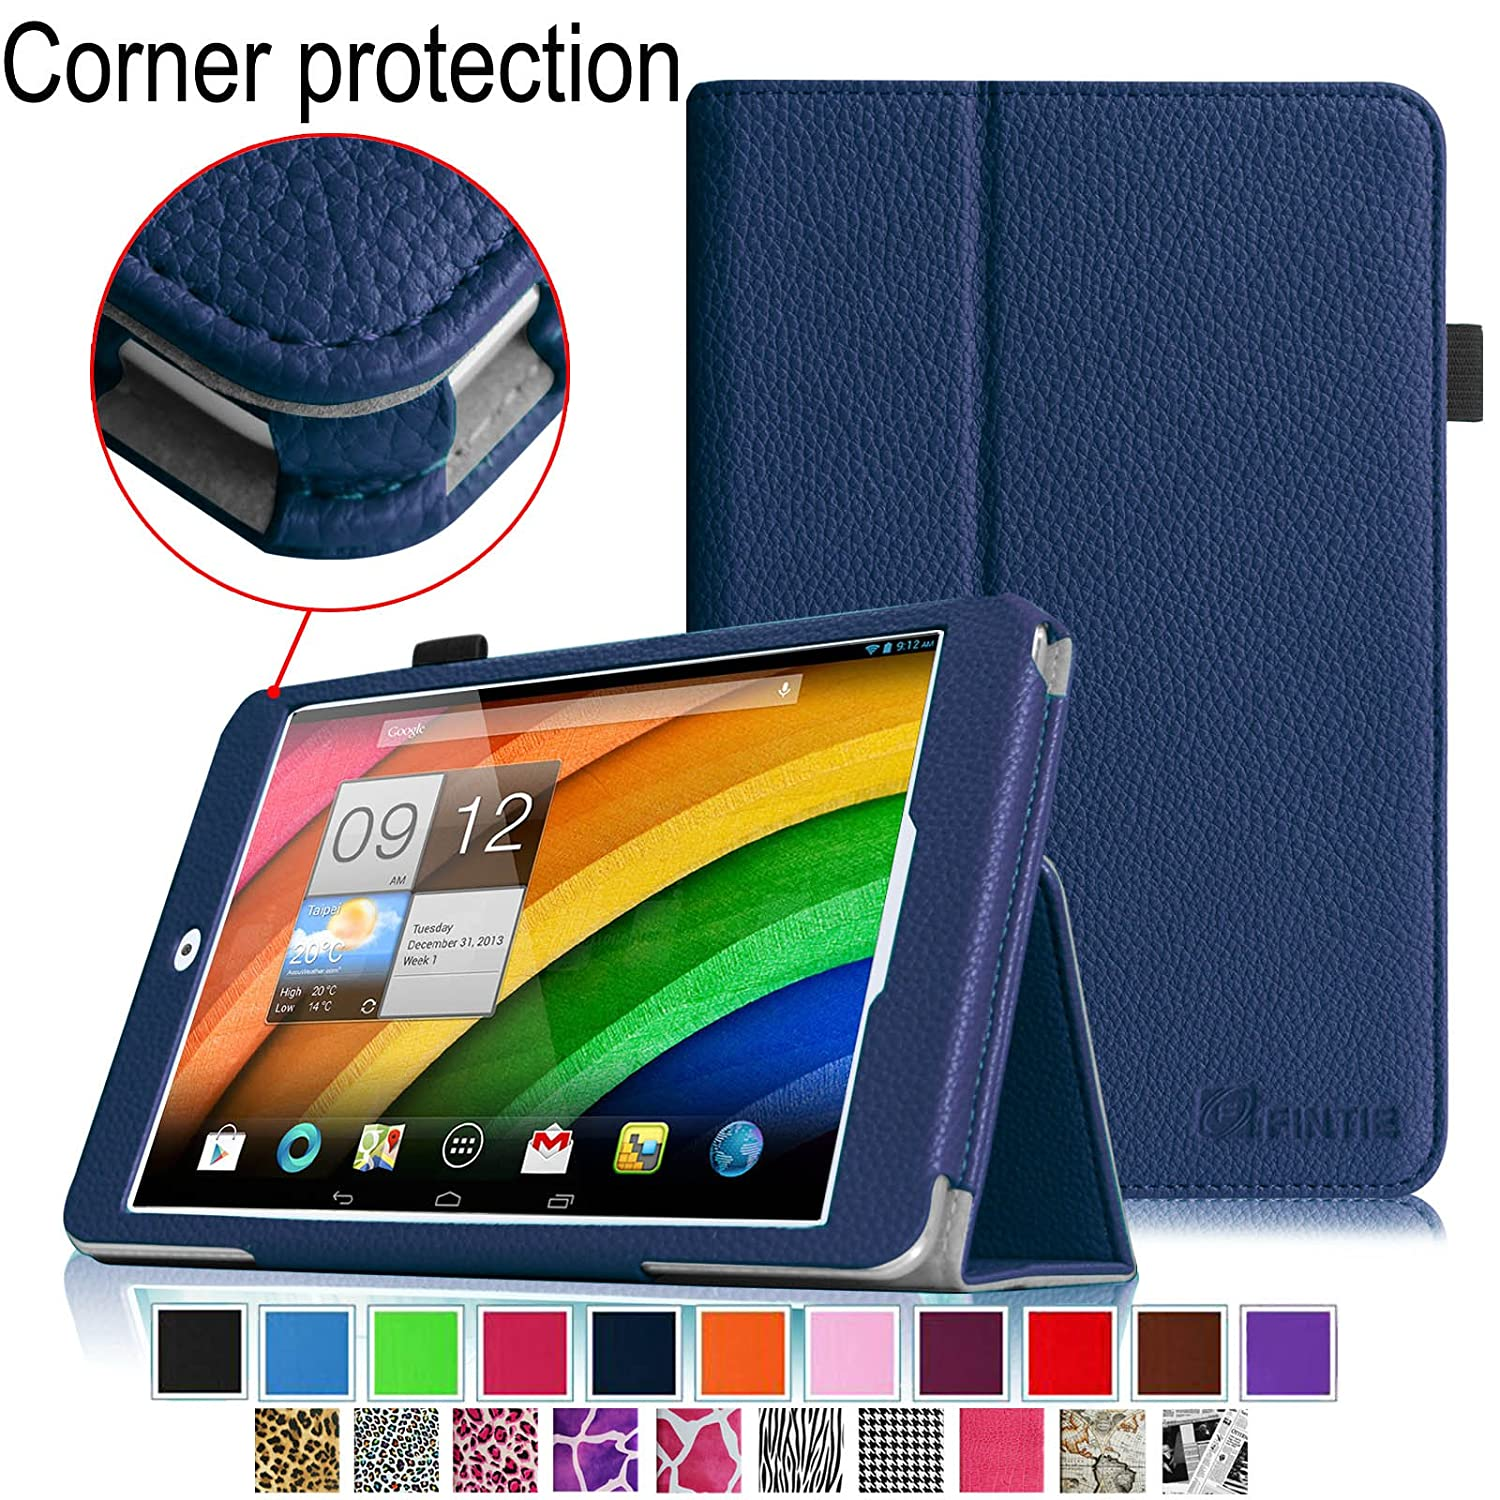 Fintie Acer Iconia Tab 8 A1-840 FHD 8-Inch Android Tablet Folio Case - Premium Leather Cover Stand With Stylus Holder luxury ultra slim folio stand flip leather case smart sleeve cover for lg g pad 4 iv 8 0 p530 fhd lte 2017 lg p530 8 tablet pc